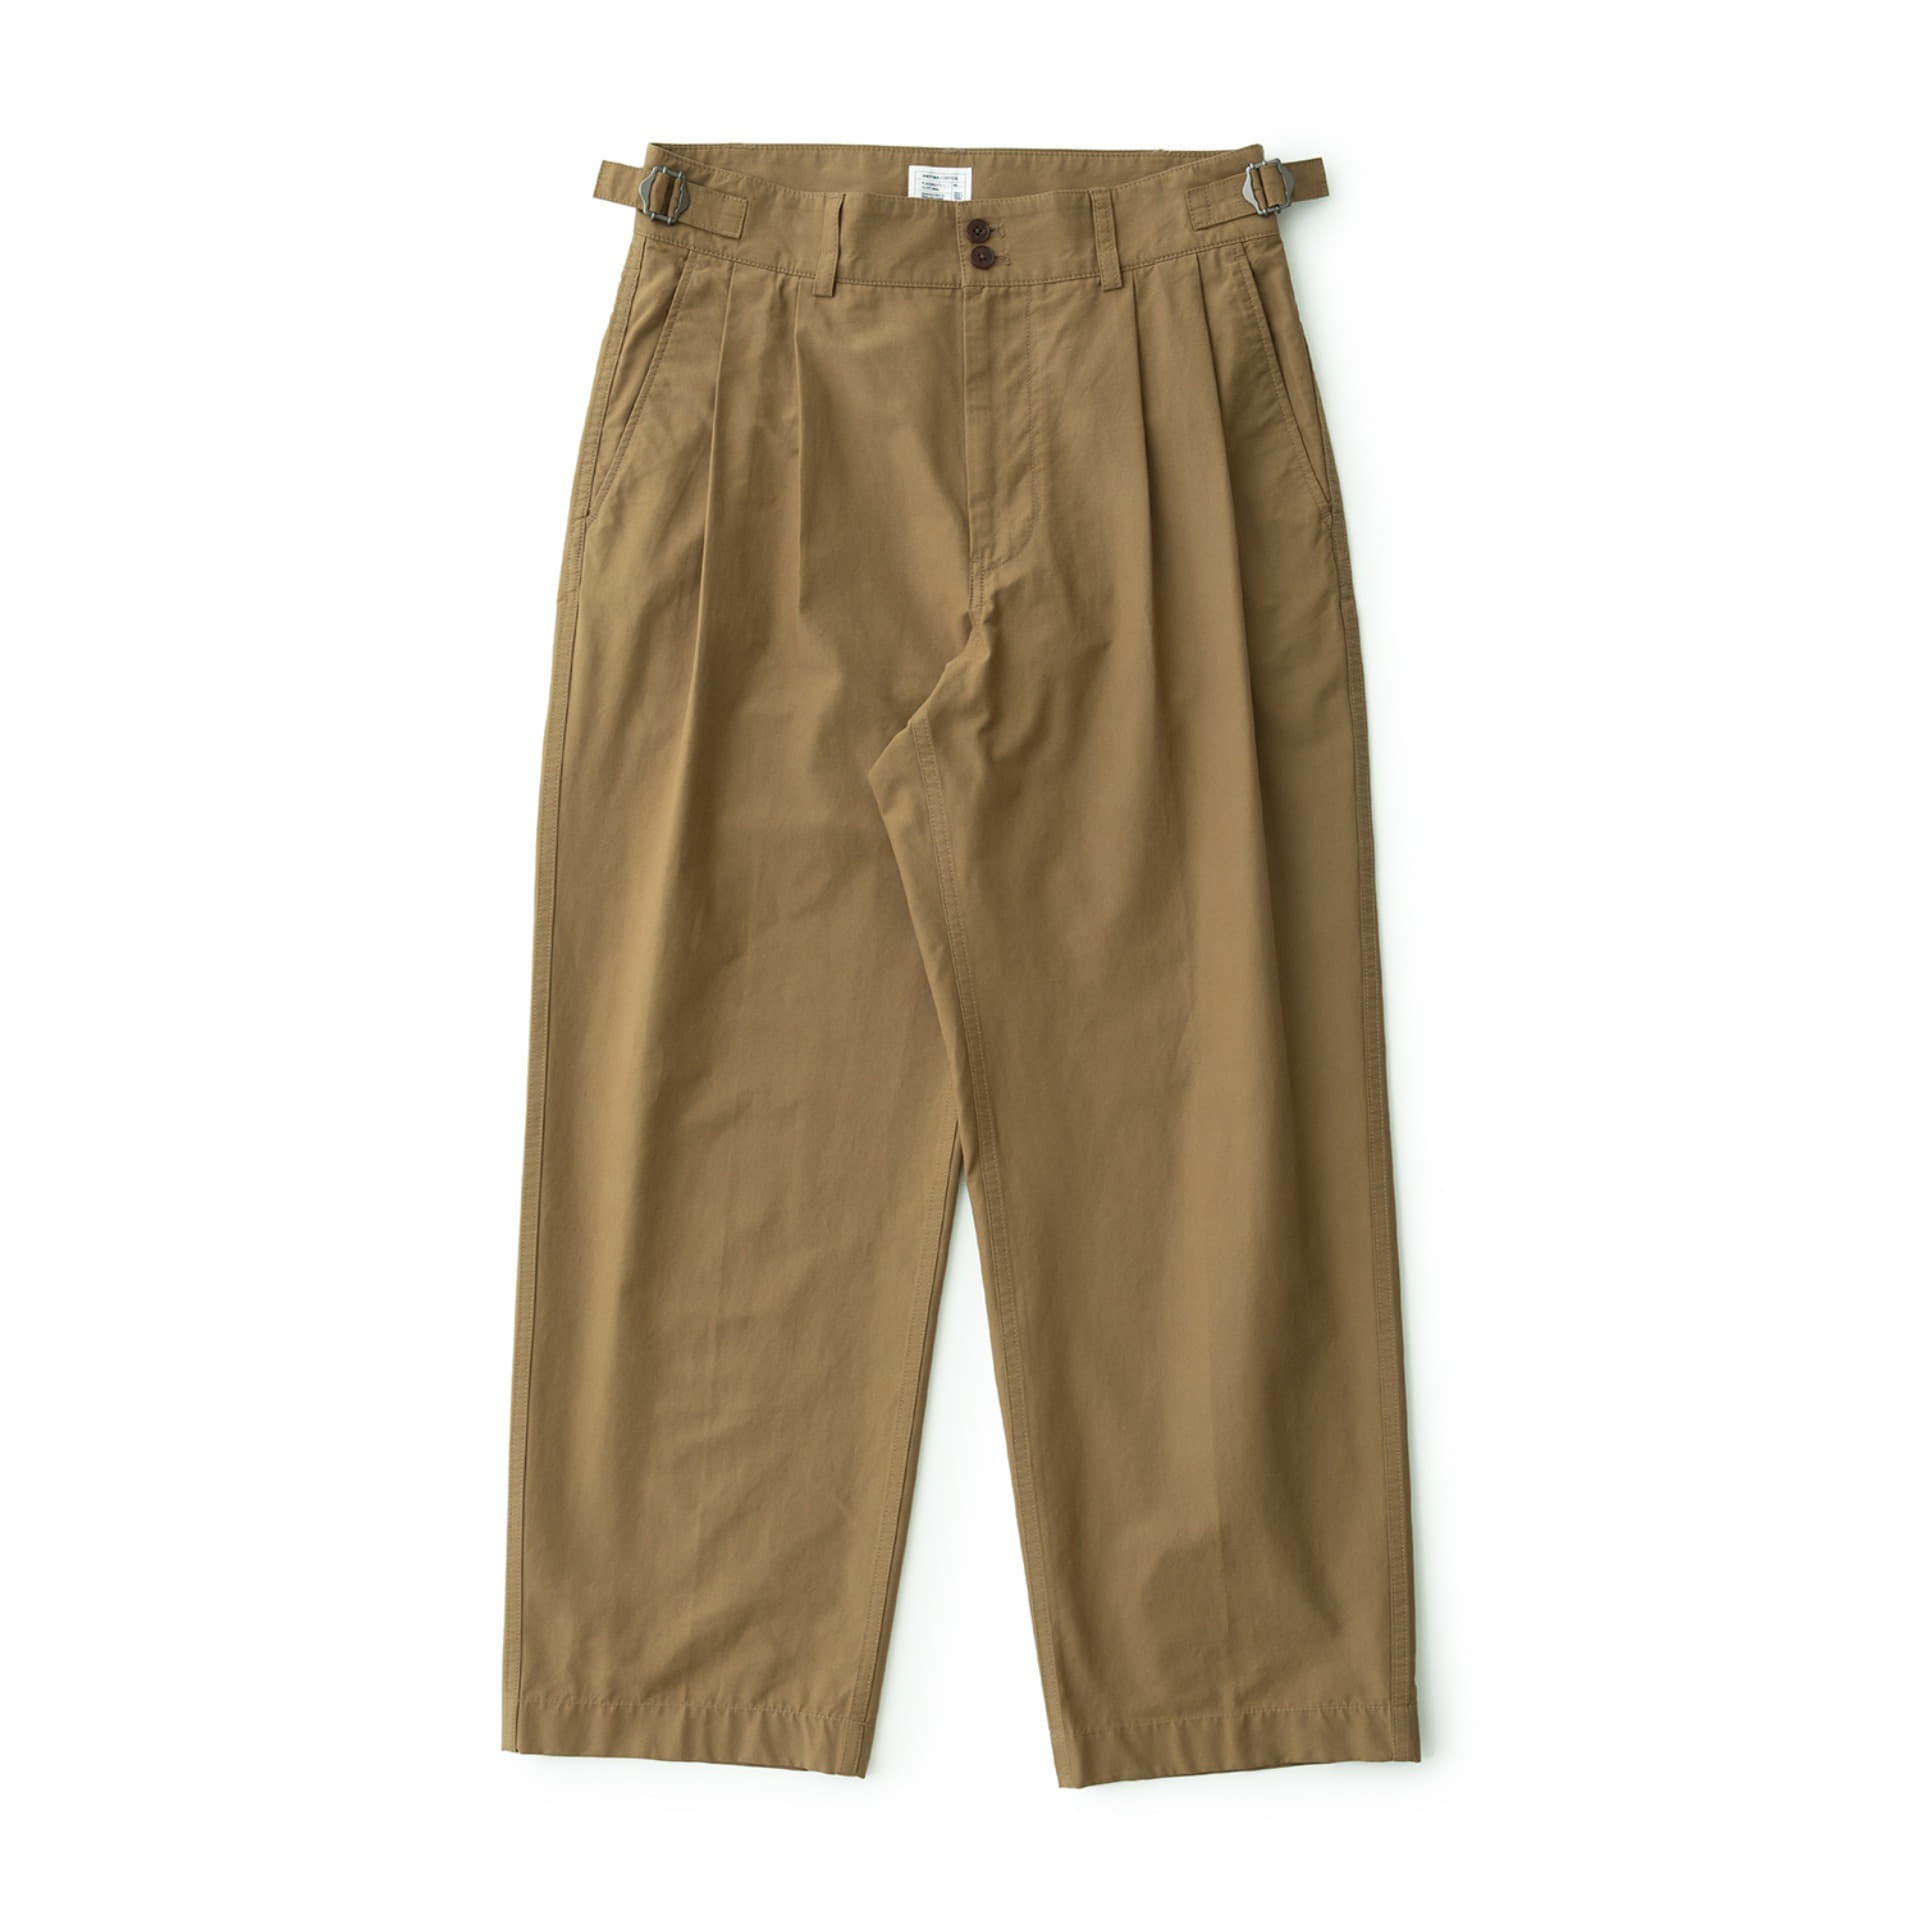 Santiago Doublecloth Pants (Tan)